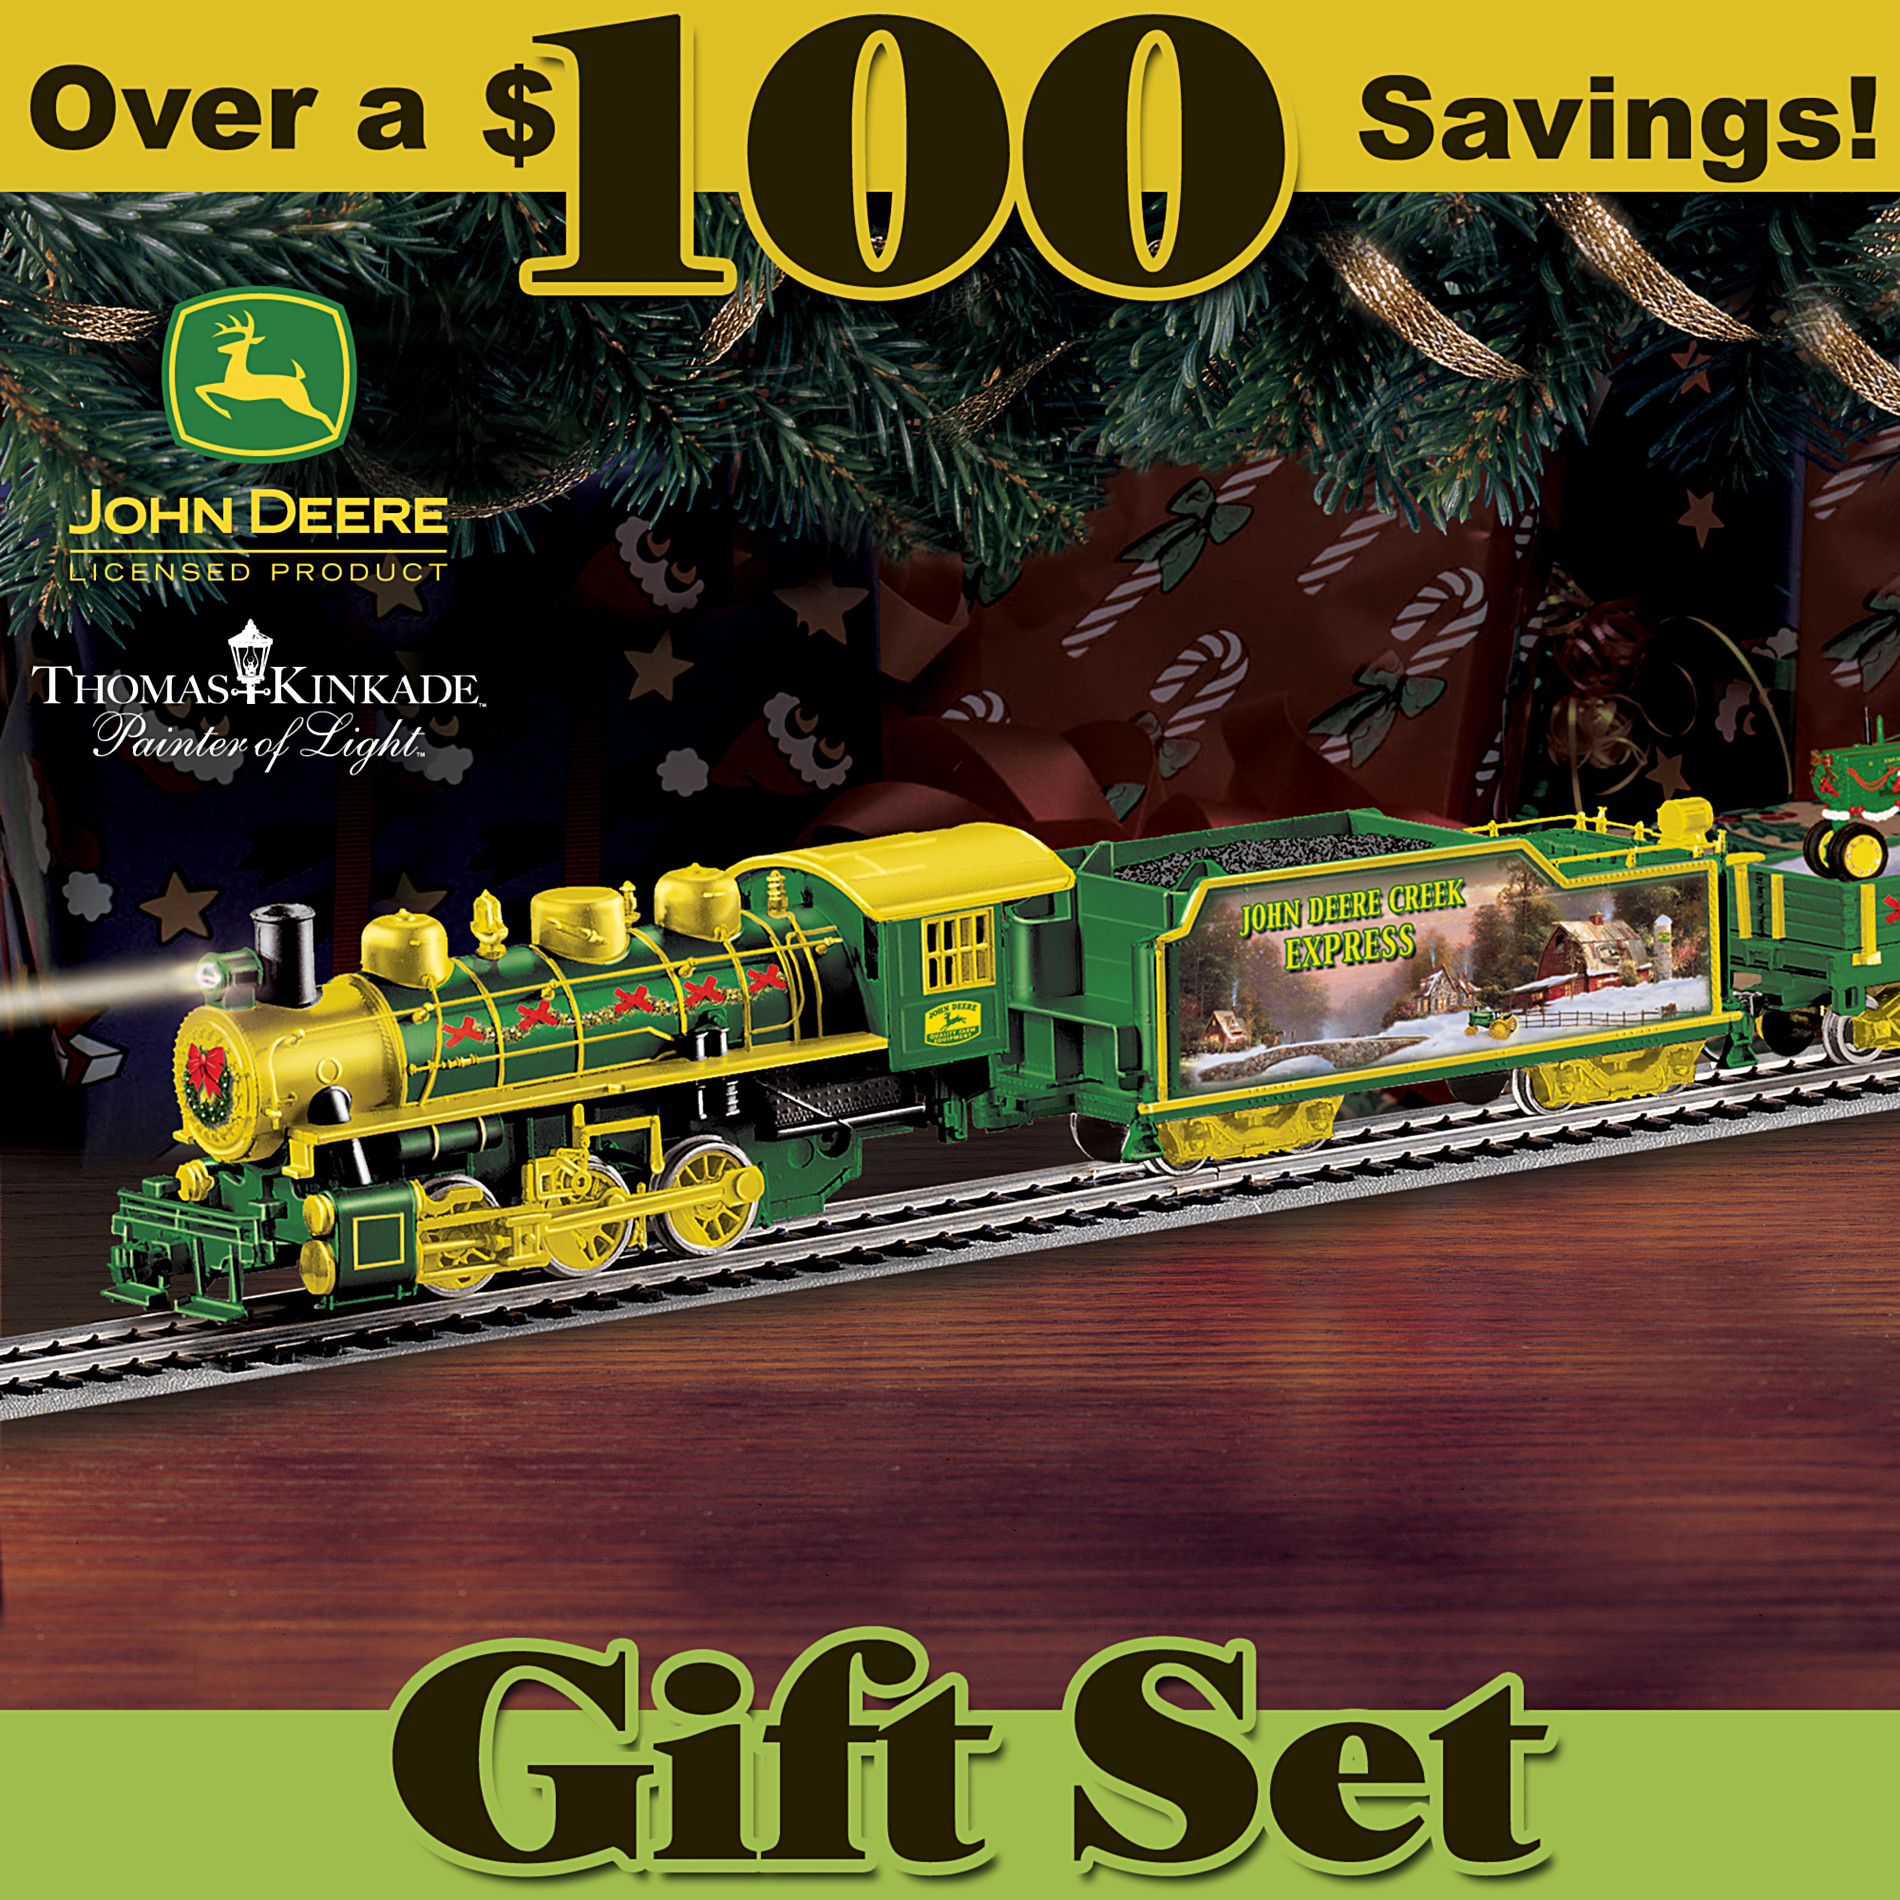 Hawthorne Village John Deere Creek Express: Collectible Holiday Train Set at Sears.com